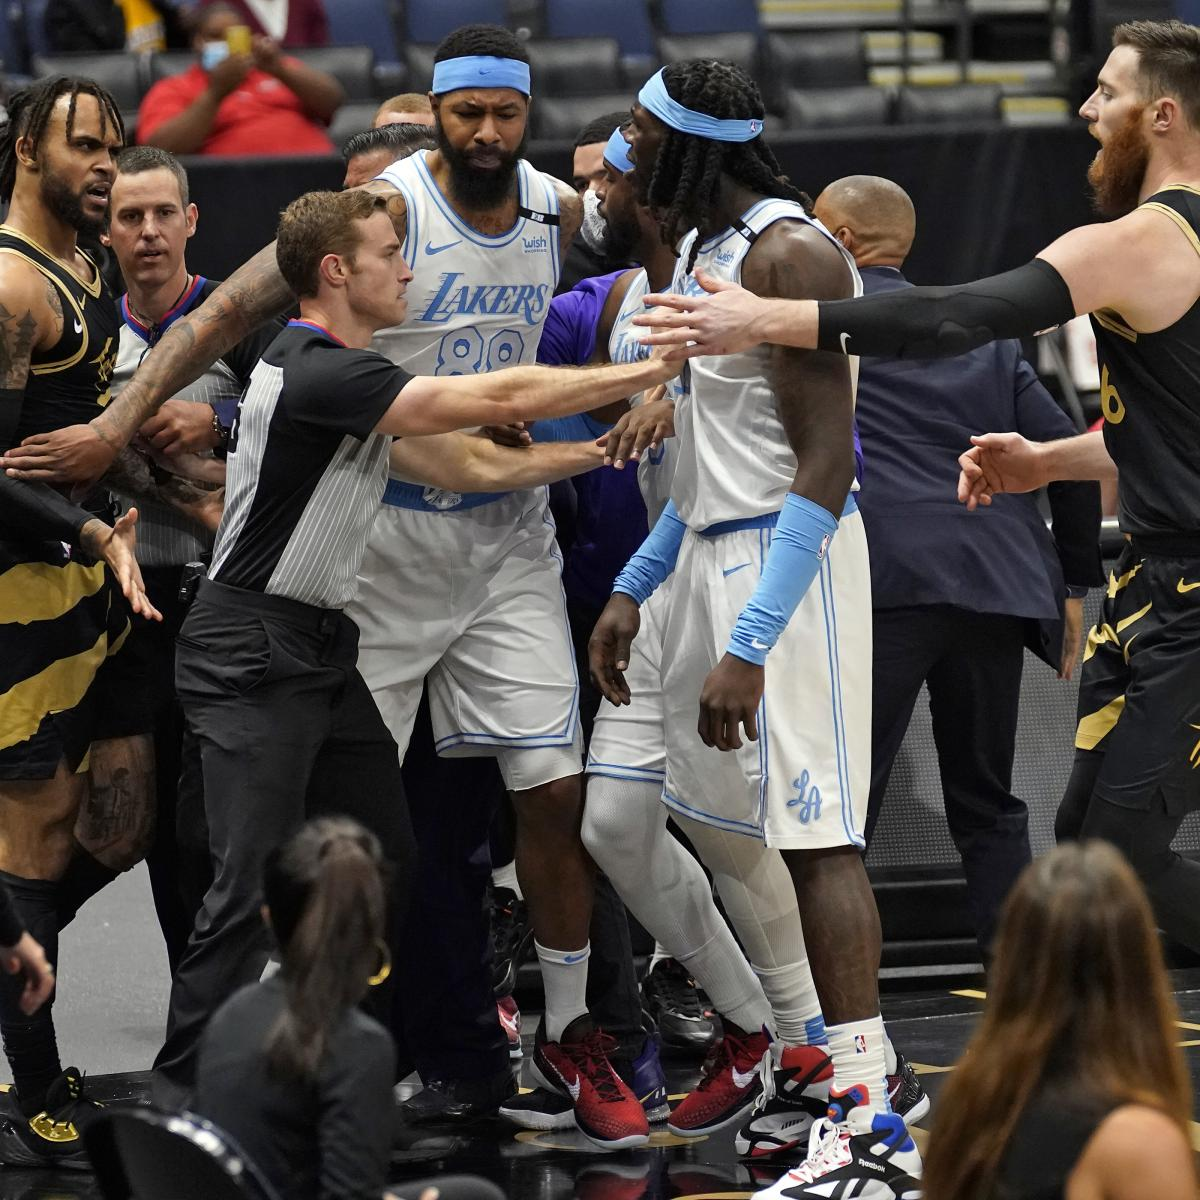 Lakers' Horton-Tucker, Raptors' VanVleet, Bembry Suspended 1 Game After Scuffle thumbnail